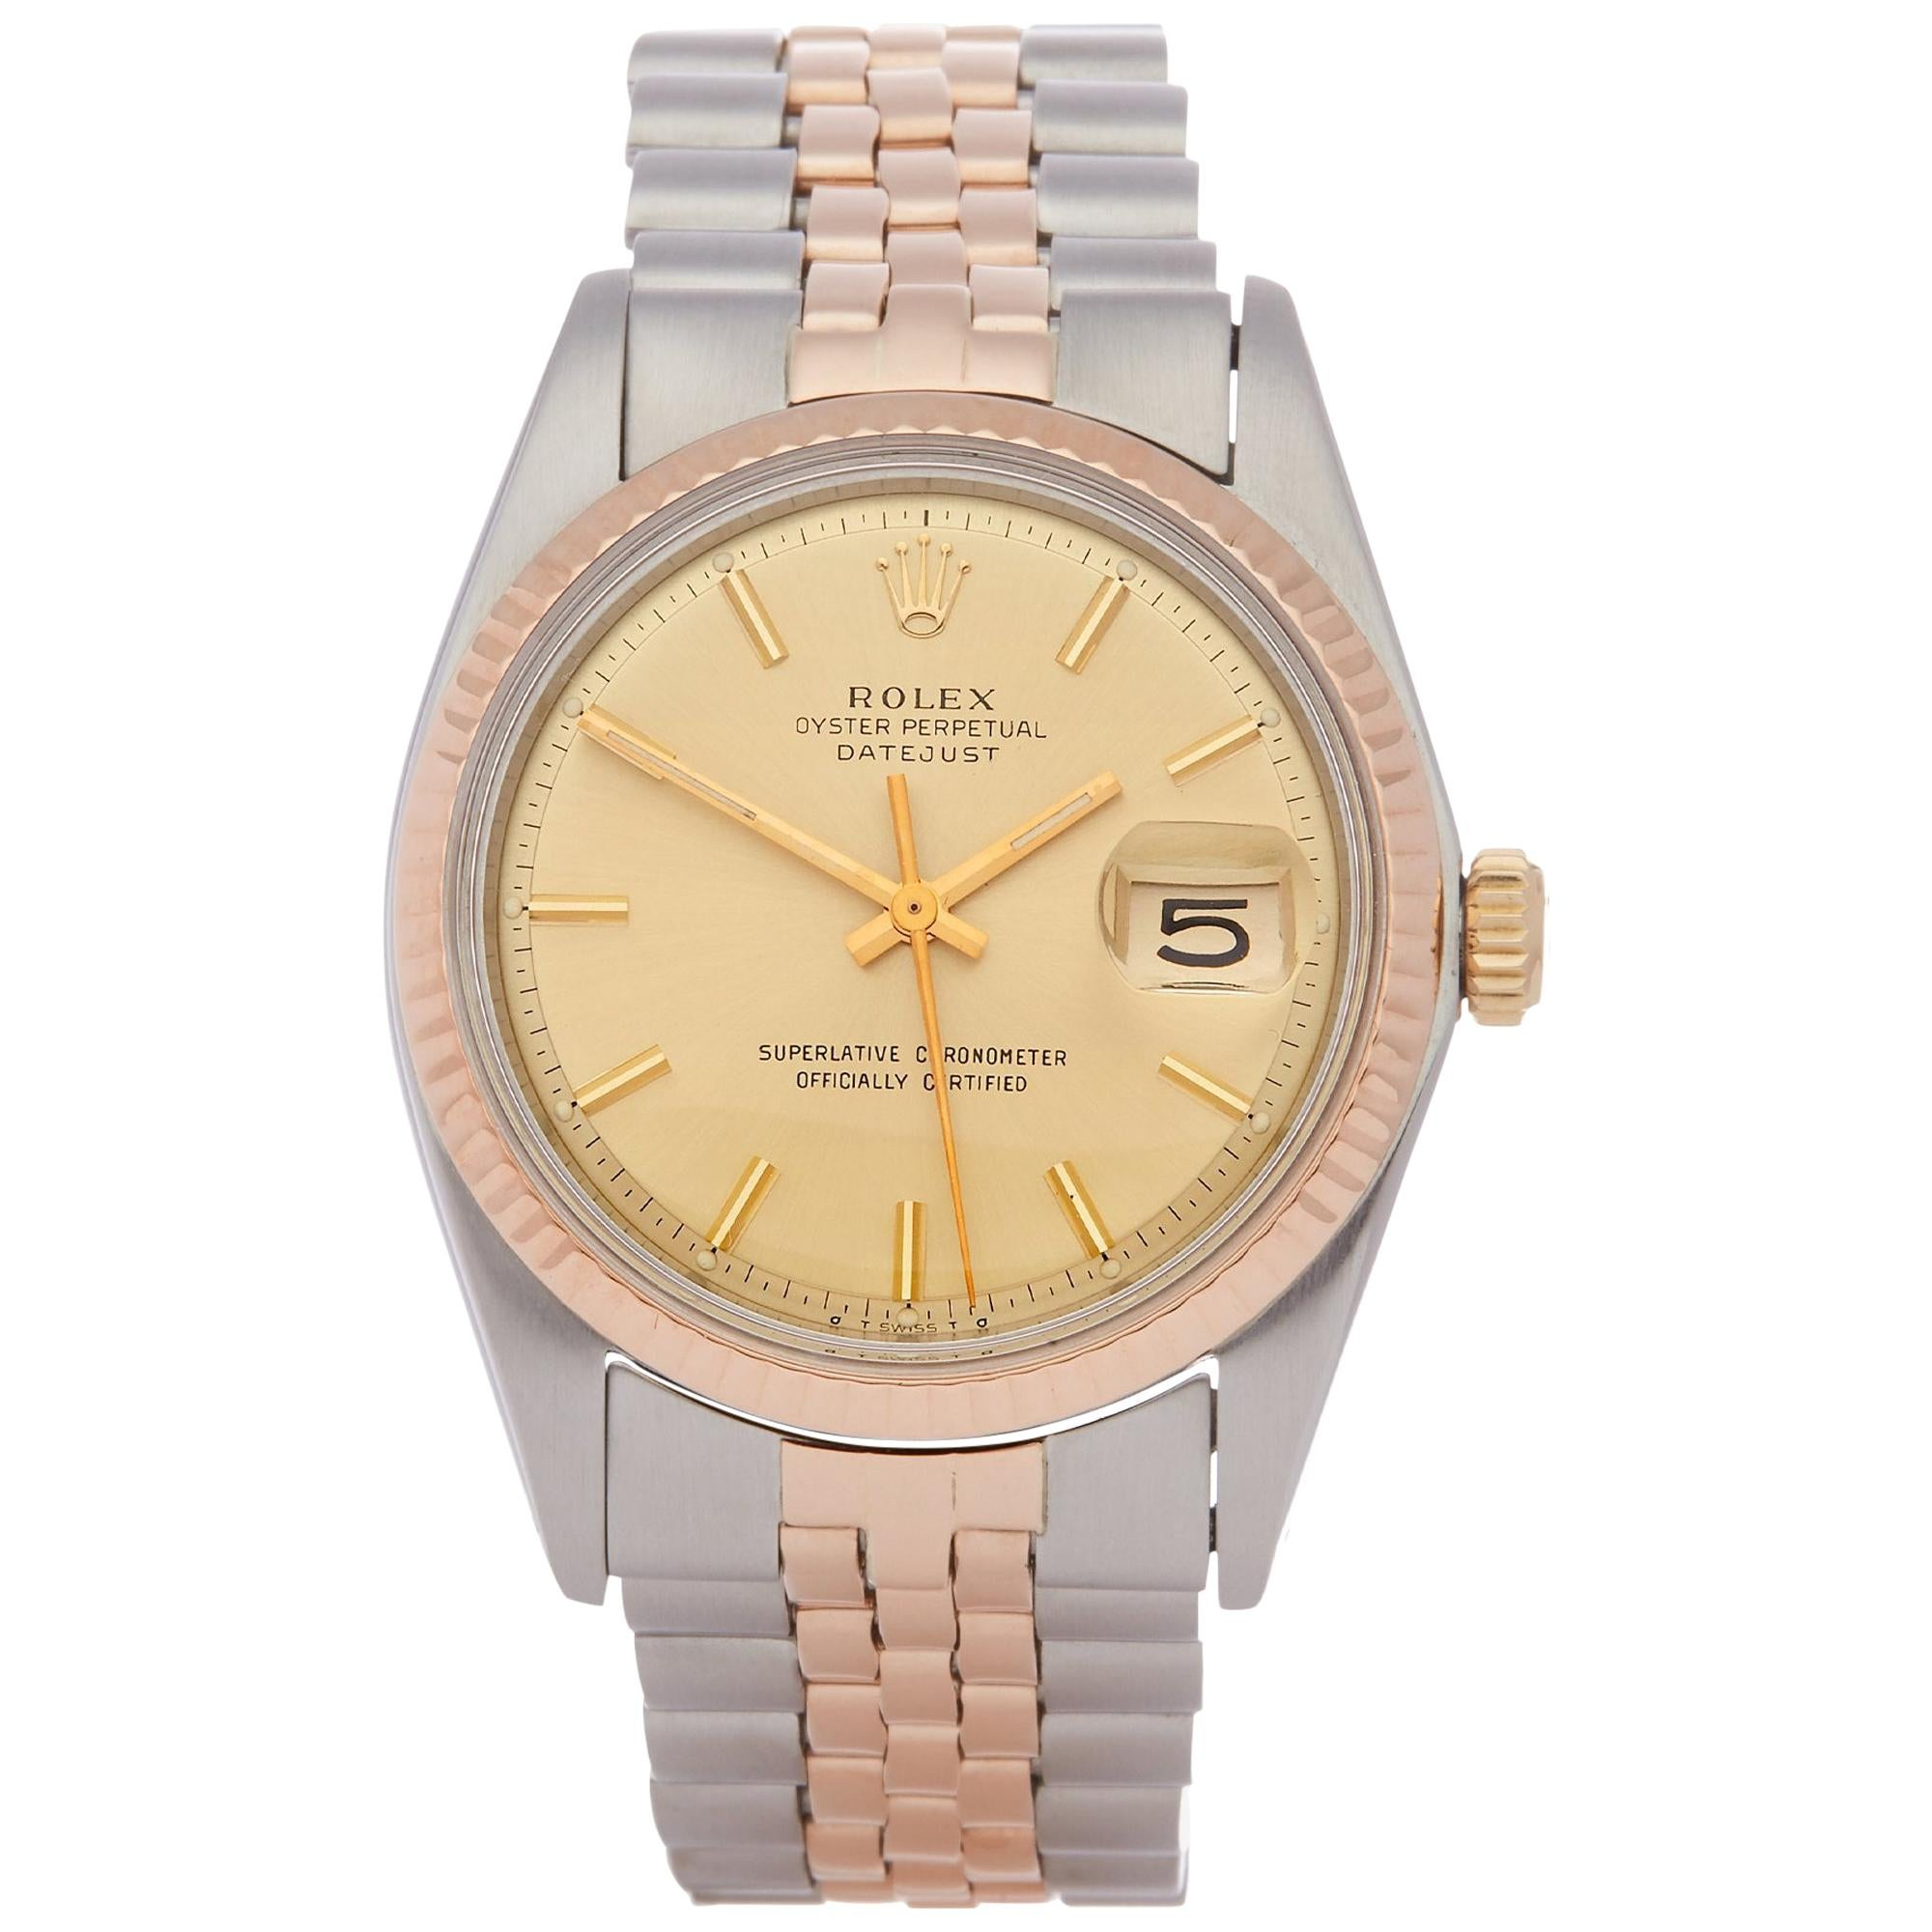 Rolex Datejust 36 1601 Men's Stainless Steel and Rose Gold Watch